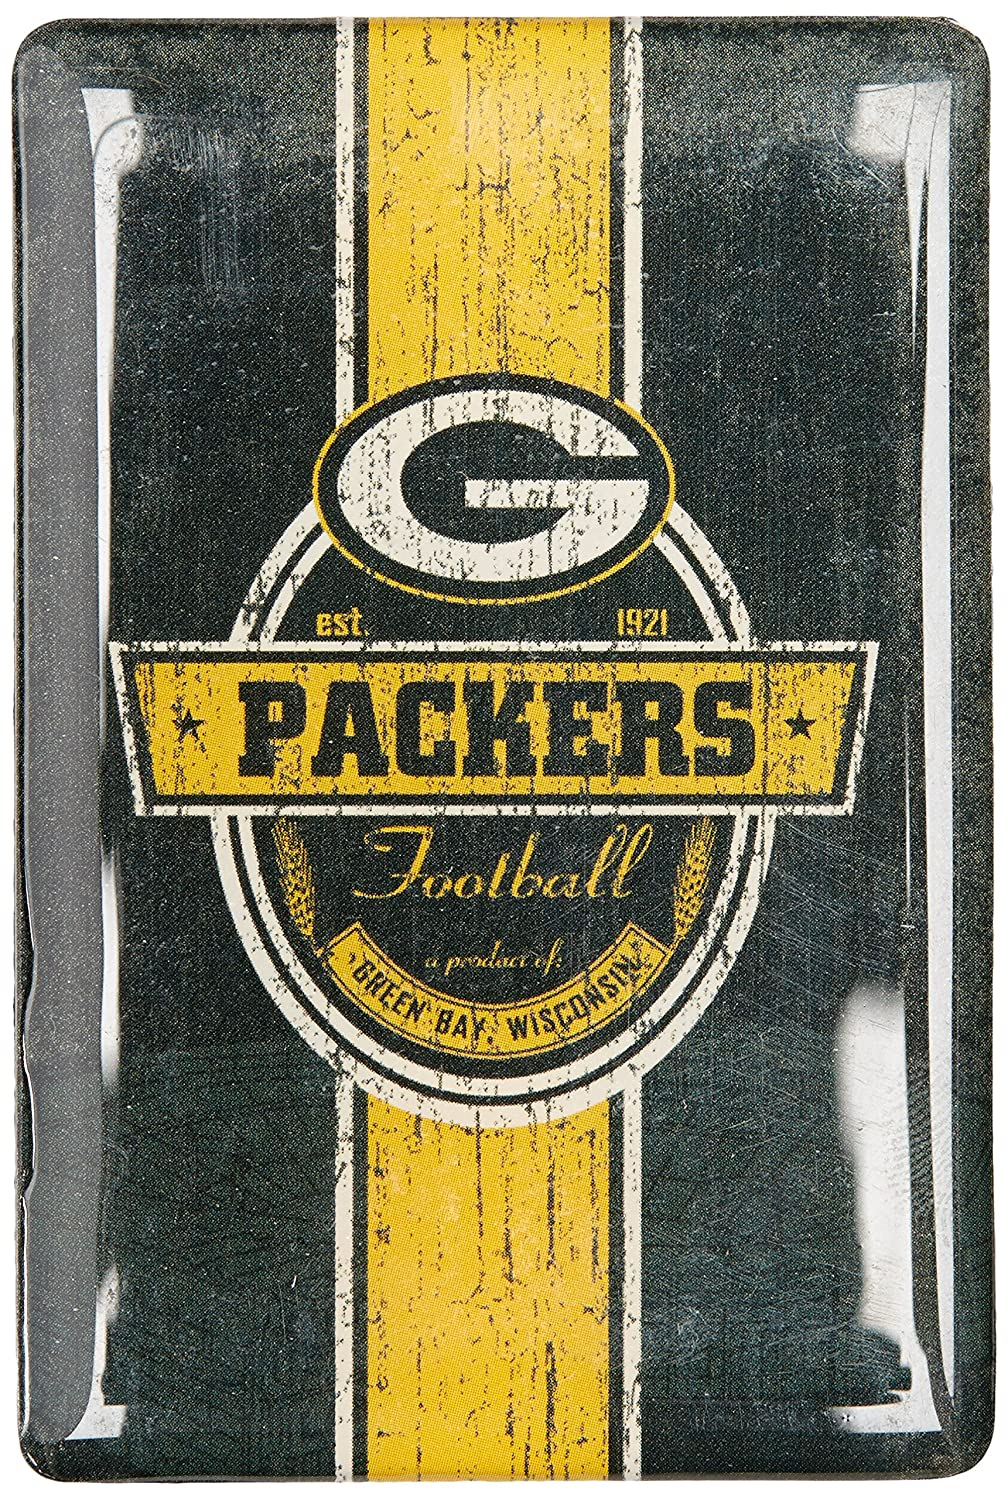 One Size NFL Green Bay Packers Fridge Magnet Green